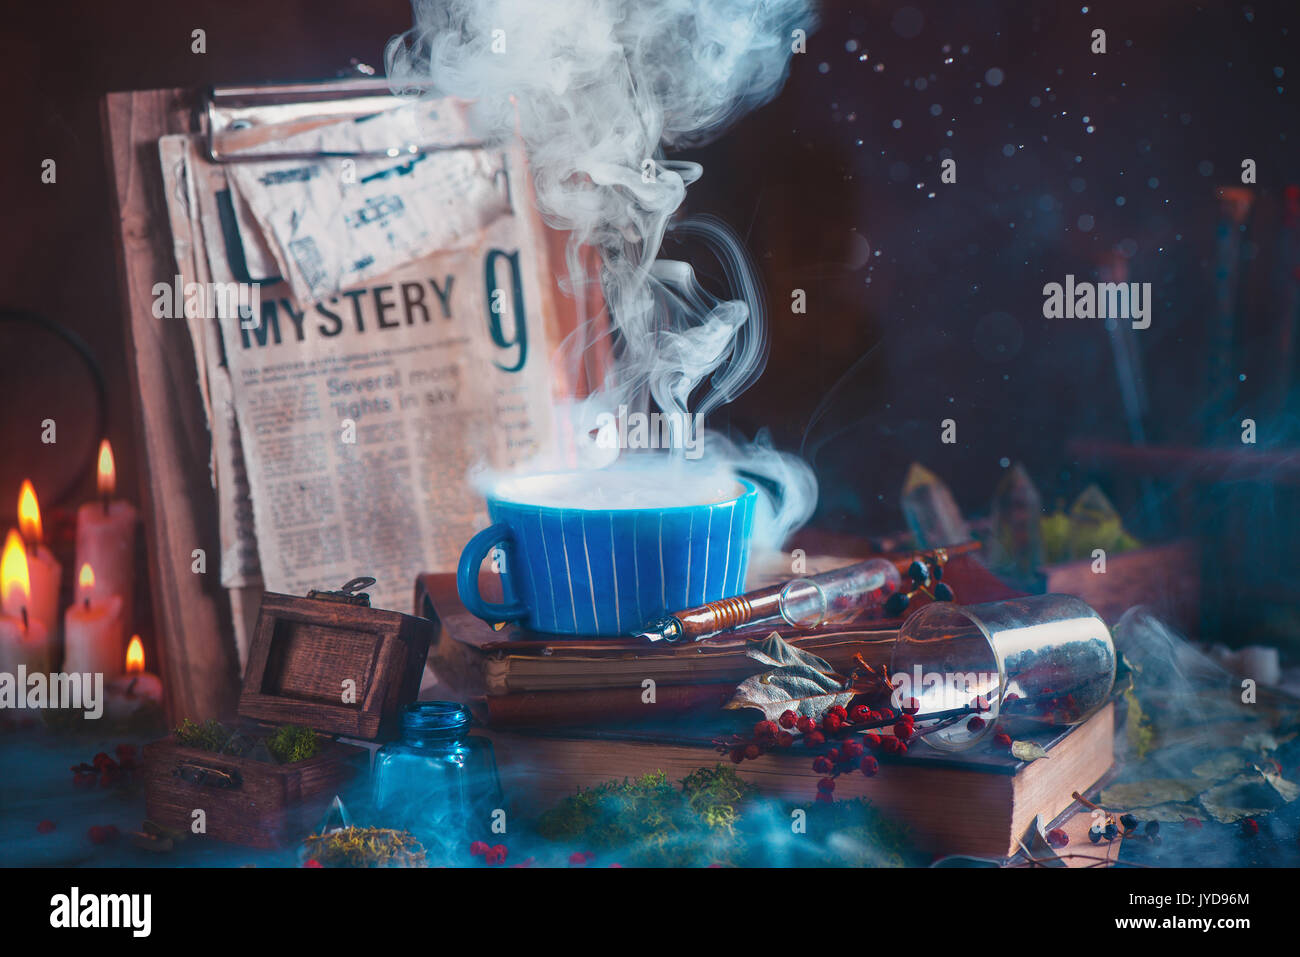 Rising steam in a ceramic tea cup on a wooden background with candles, mystery newspaper clips, books, leaves and Stock Photo